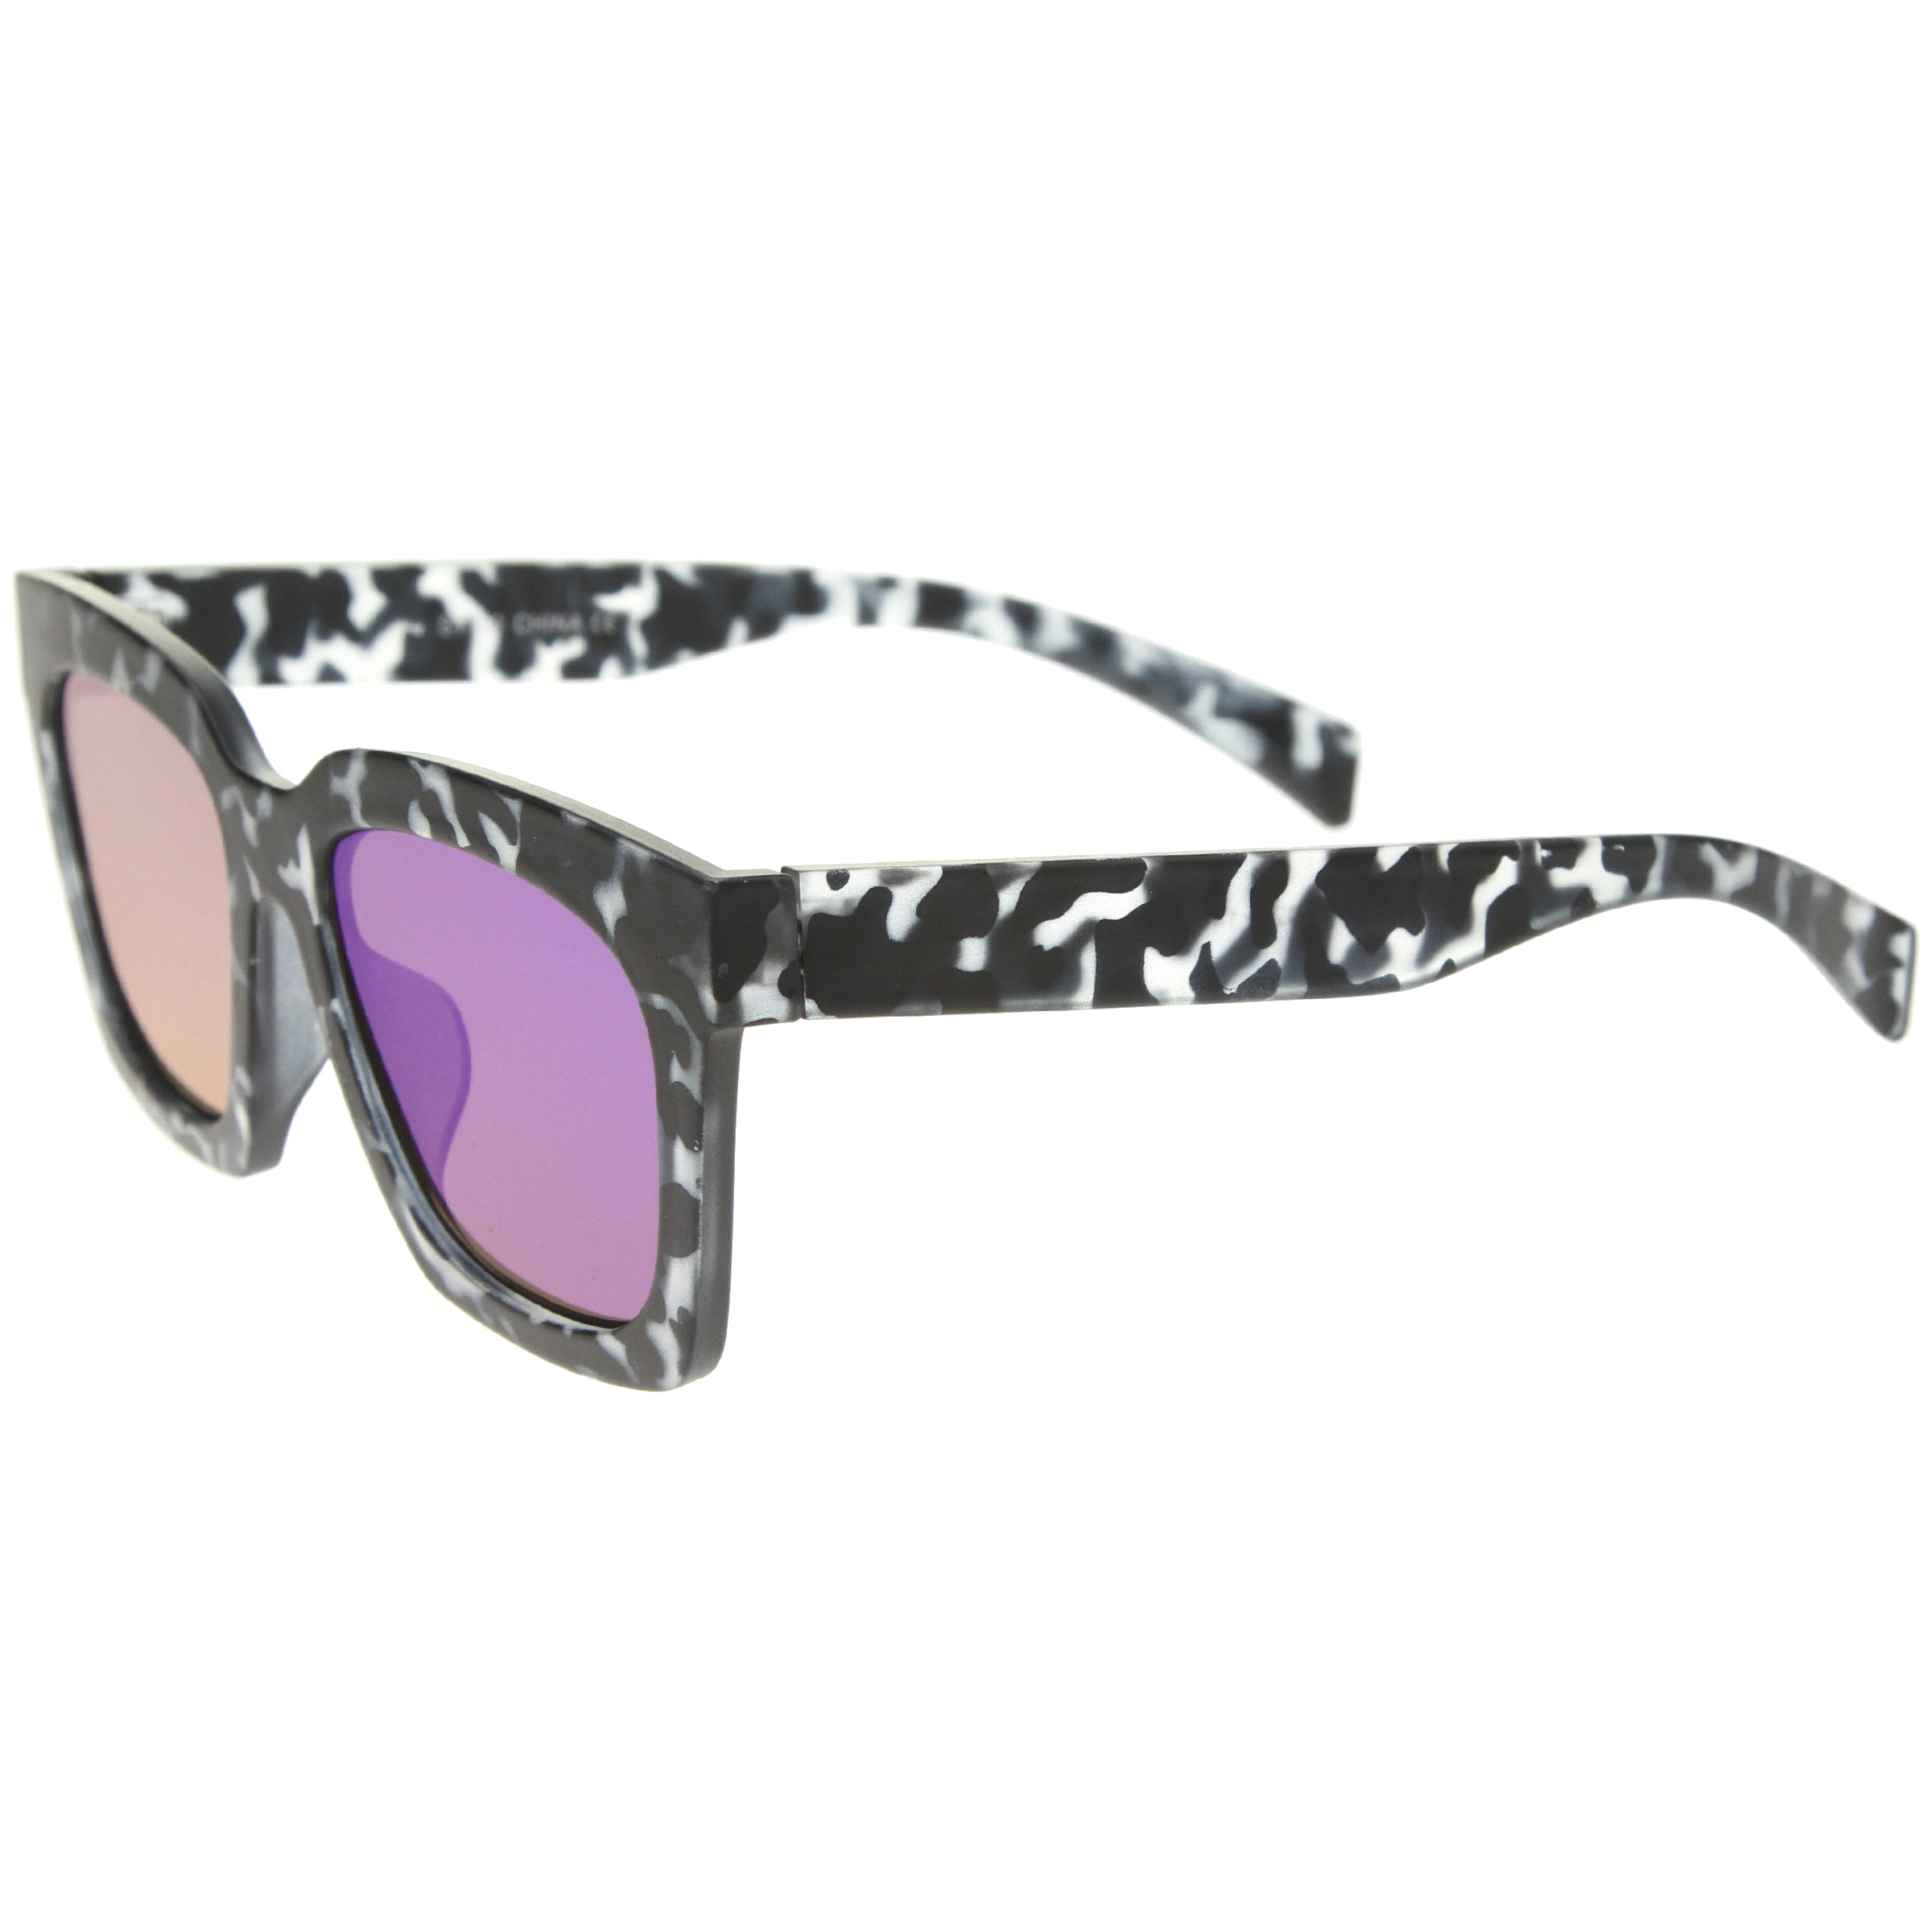 Retro Matte Horn Rimmed Colored Mirror Flat Lens Oversize Square Sunglasses 54mm - sunglass.la - 7